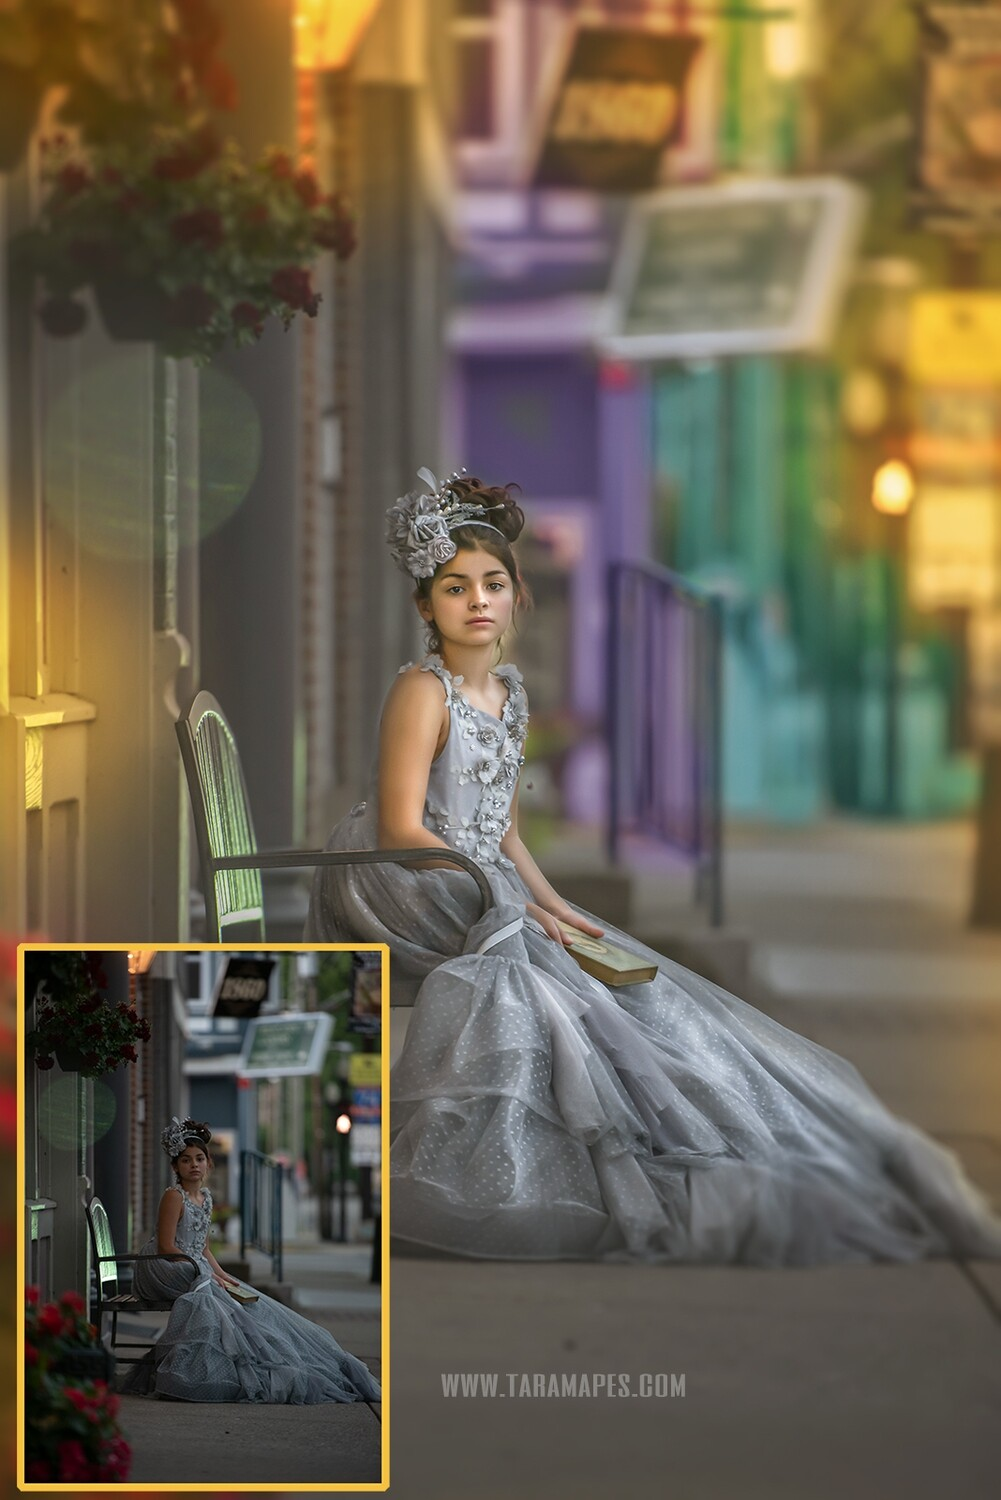 Liv in the City - Painterly Photoshop Tutorial TUTORIAL ONLY- Fine Art Tutorial by Tara Mapes